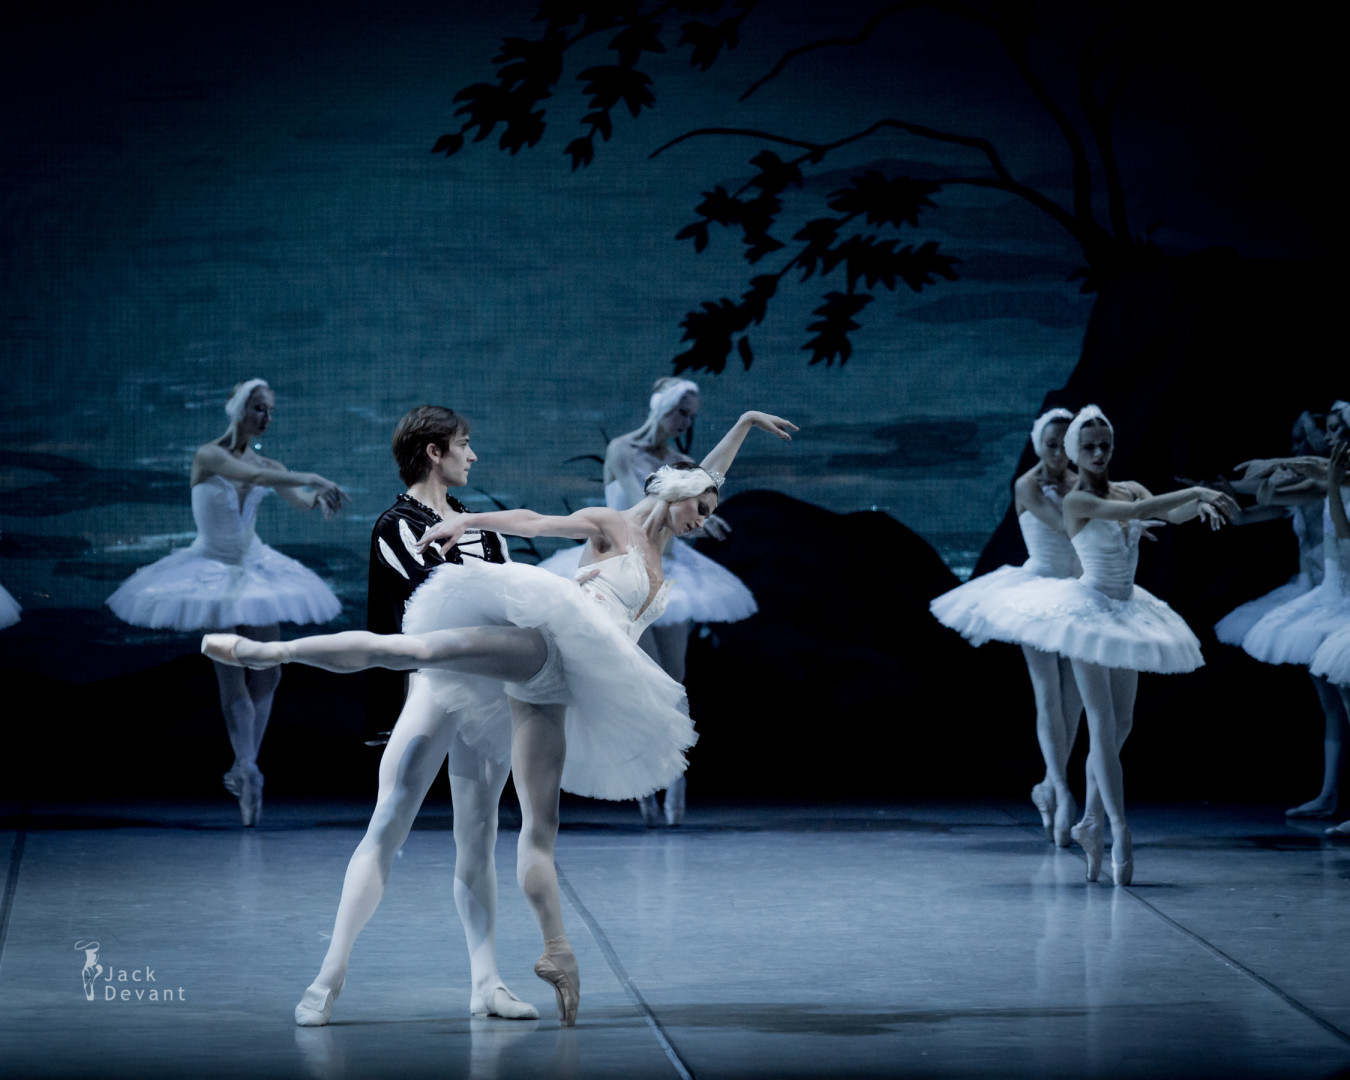 Polina Semionova and Friedemann Vogel in Swan Lake